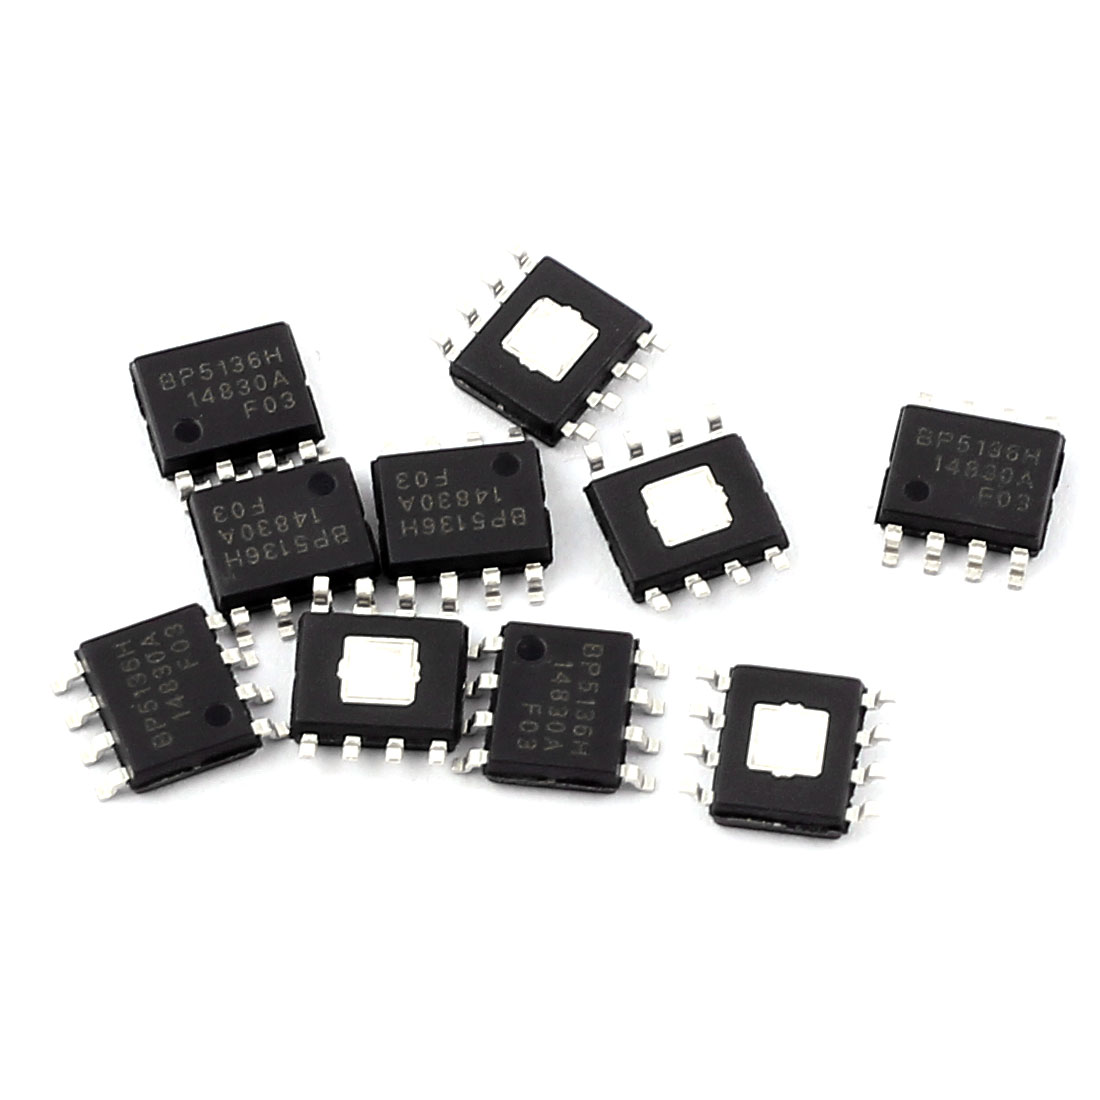 10Pcs BP5136H SOP-8 SMD SMT Type PCB Surface Mount LED Driver Circuit Module Integrated Circuit IC Chip